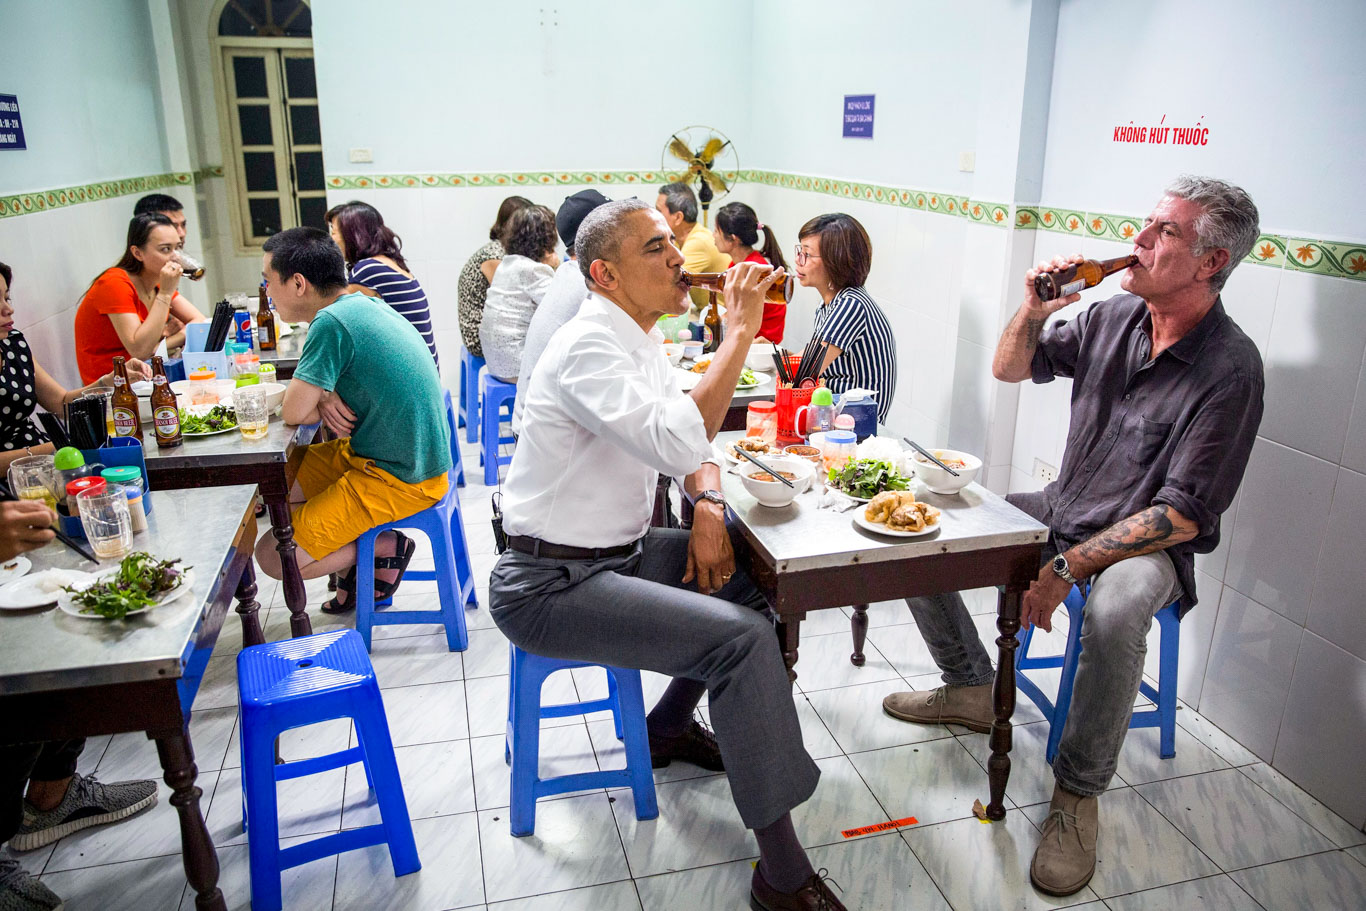 B˙n cha Huong LiÍn restaurant in Hanoi, Vietnam, May 23, 2016. (Official White House Photo by Pete Souza)